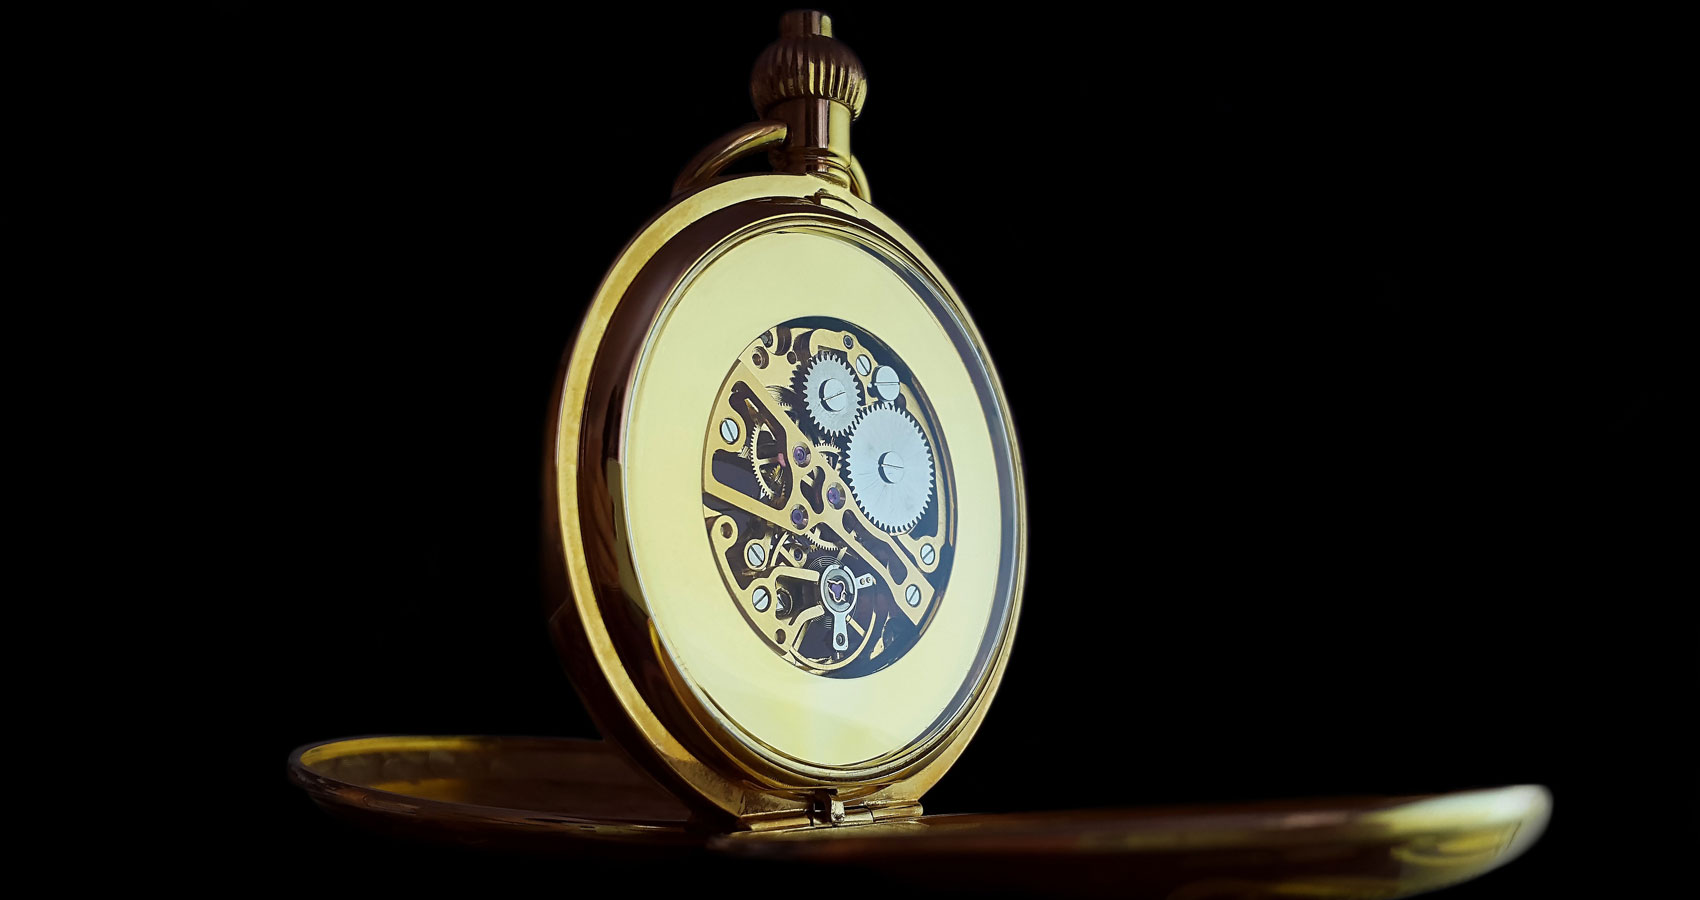 Time Is, a poem written by Henry van Dyke at Spillwords.com